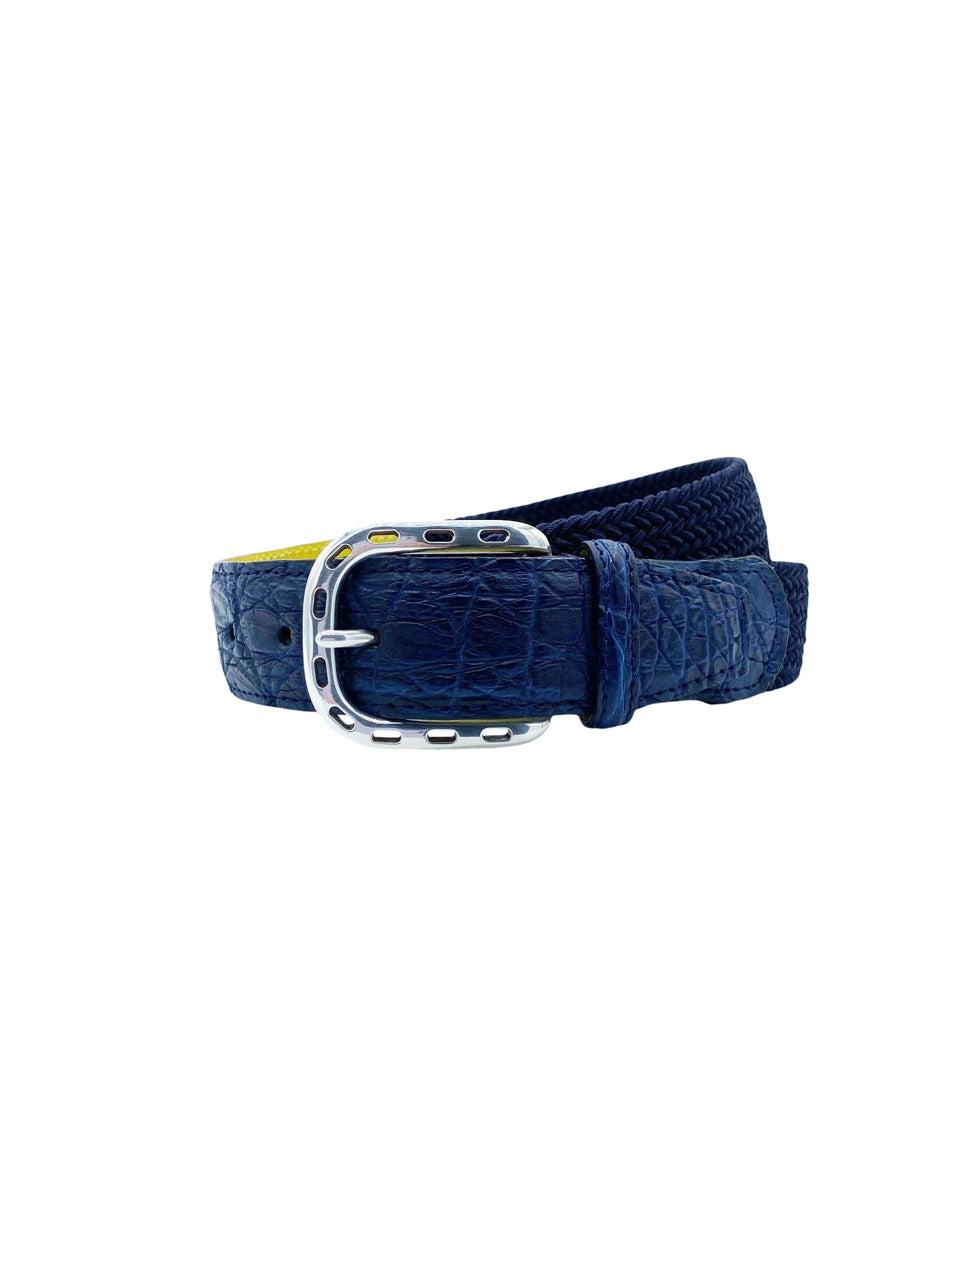 Navy Woven Belt with Blue Alligator Detail